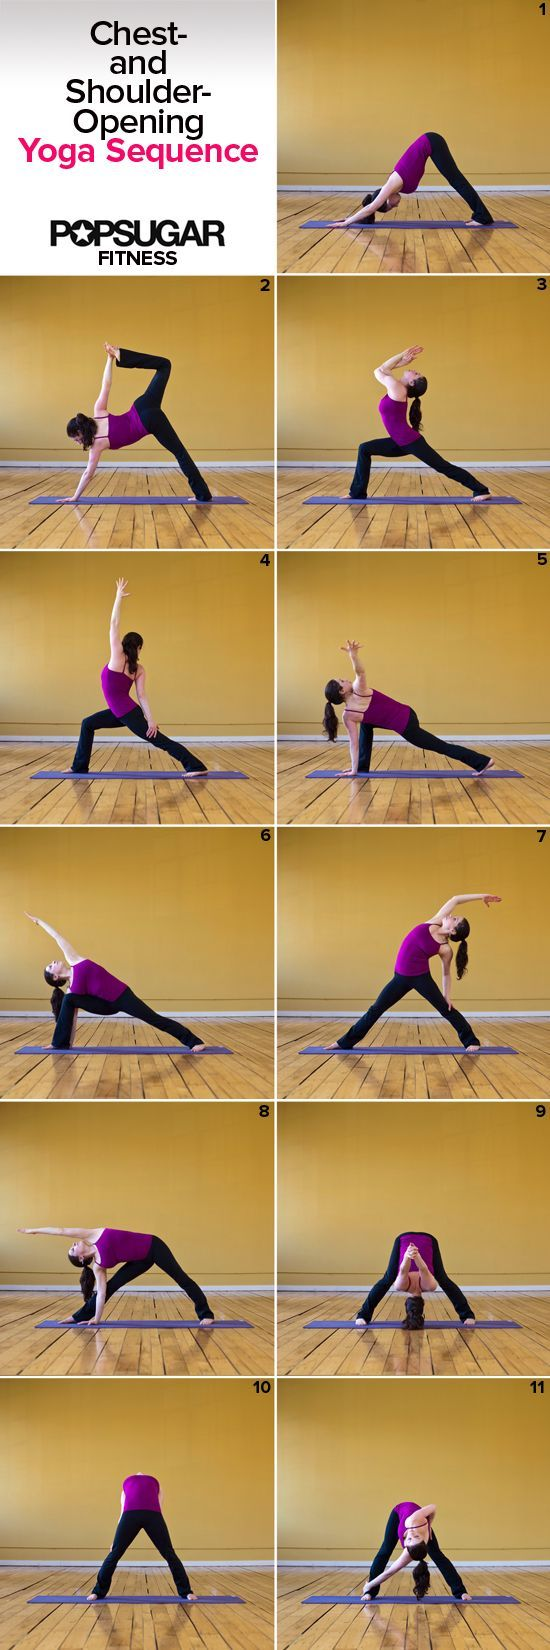 Yoga can improve breathing in people with COPD